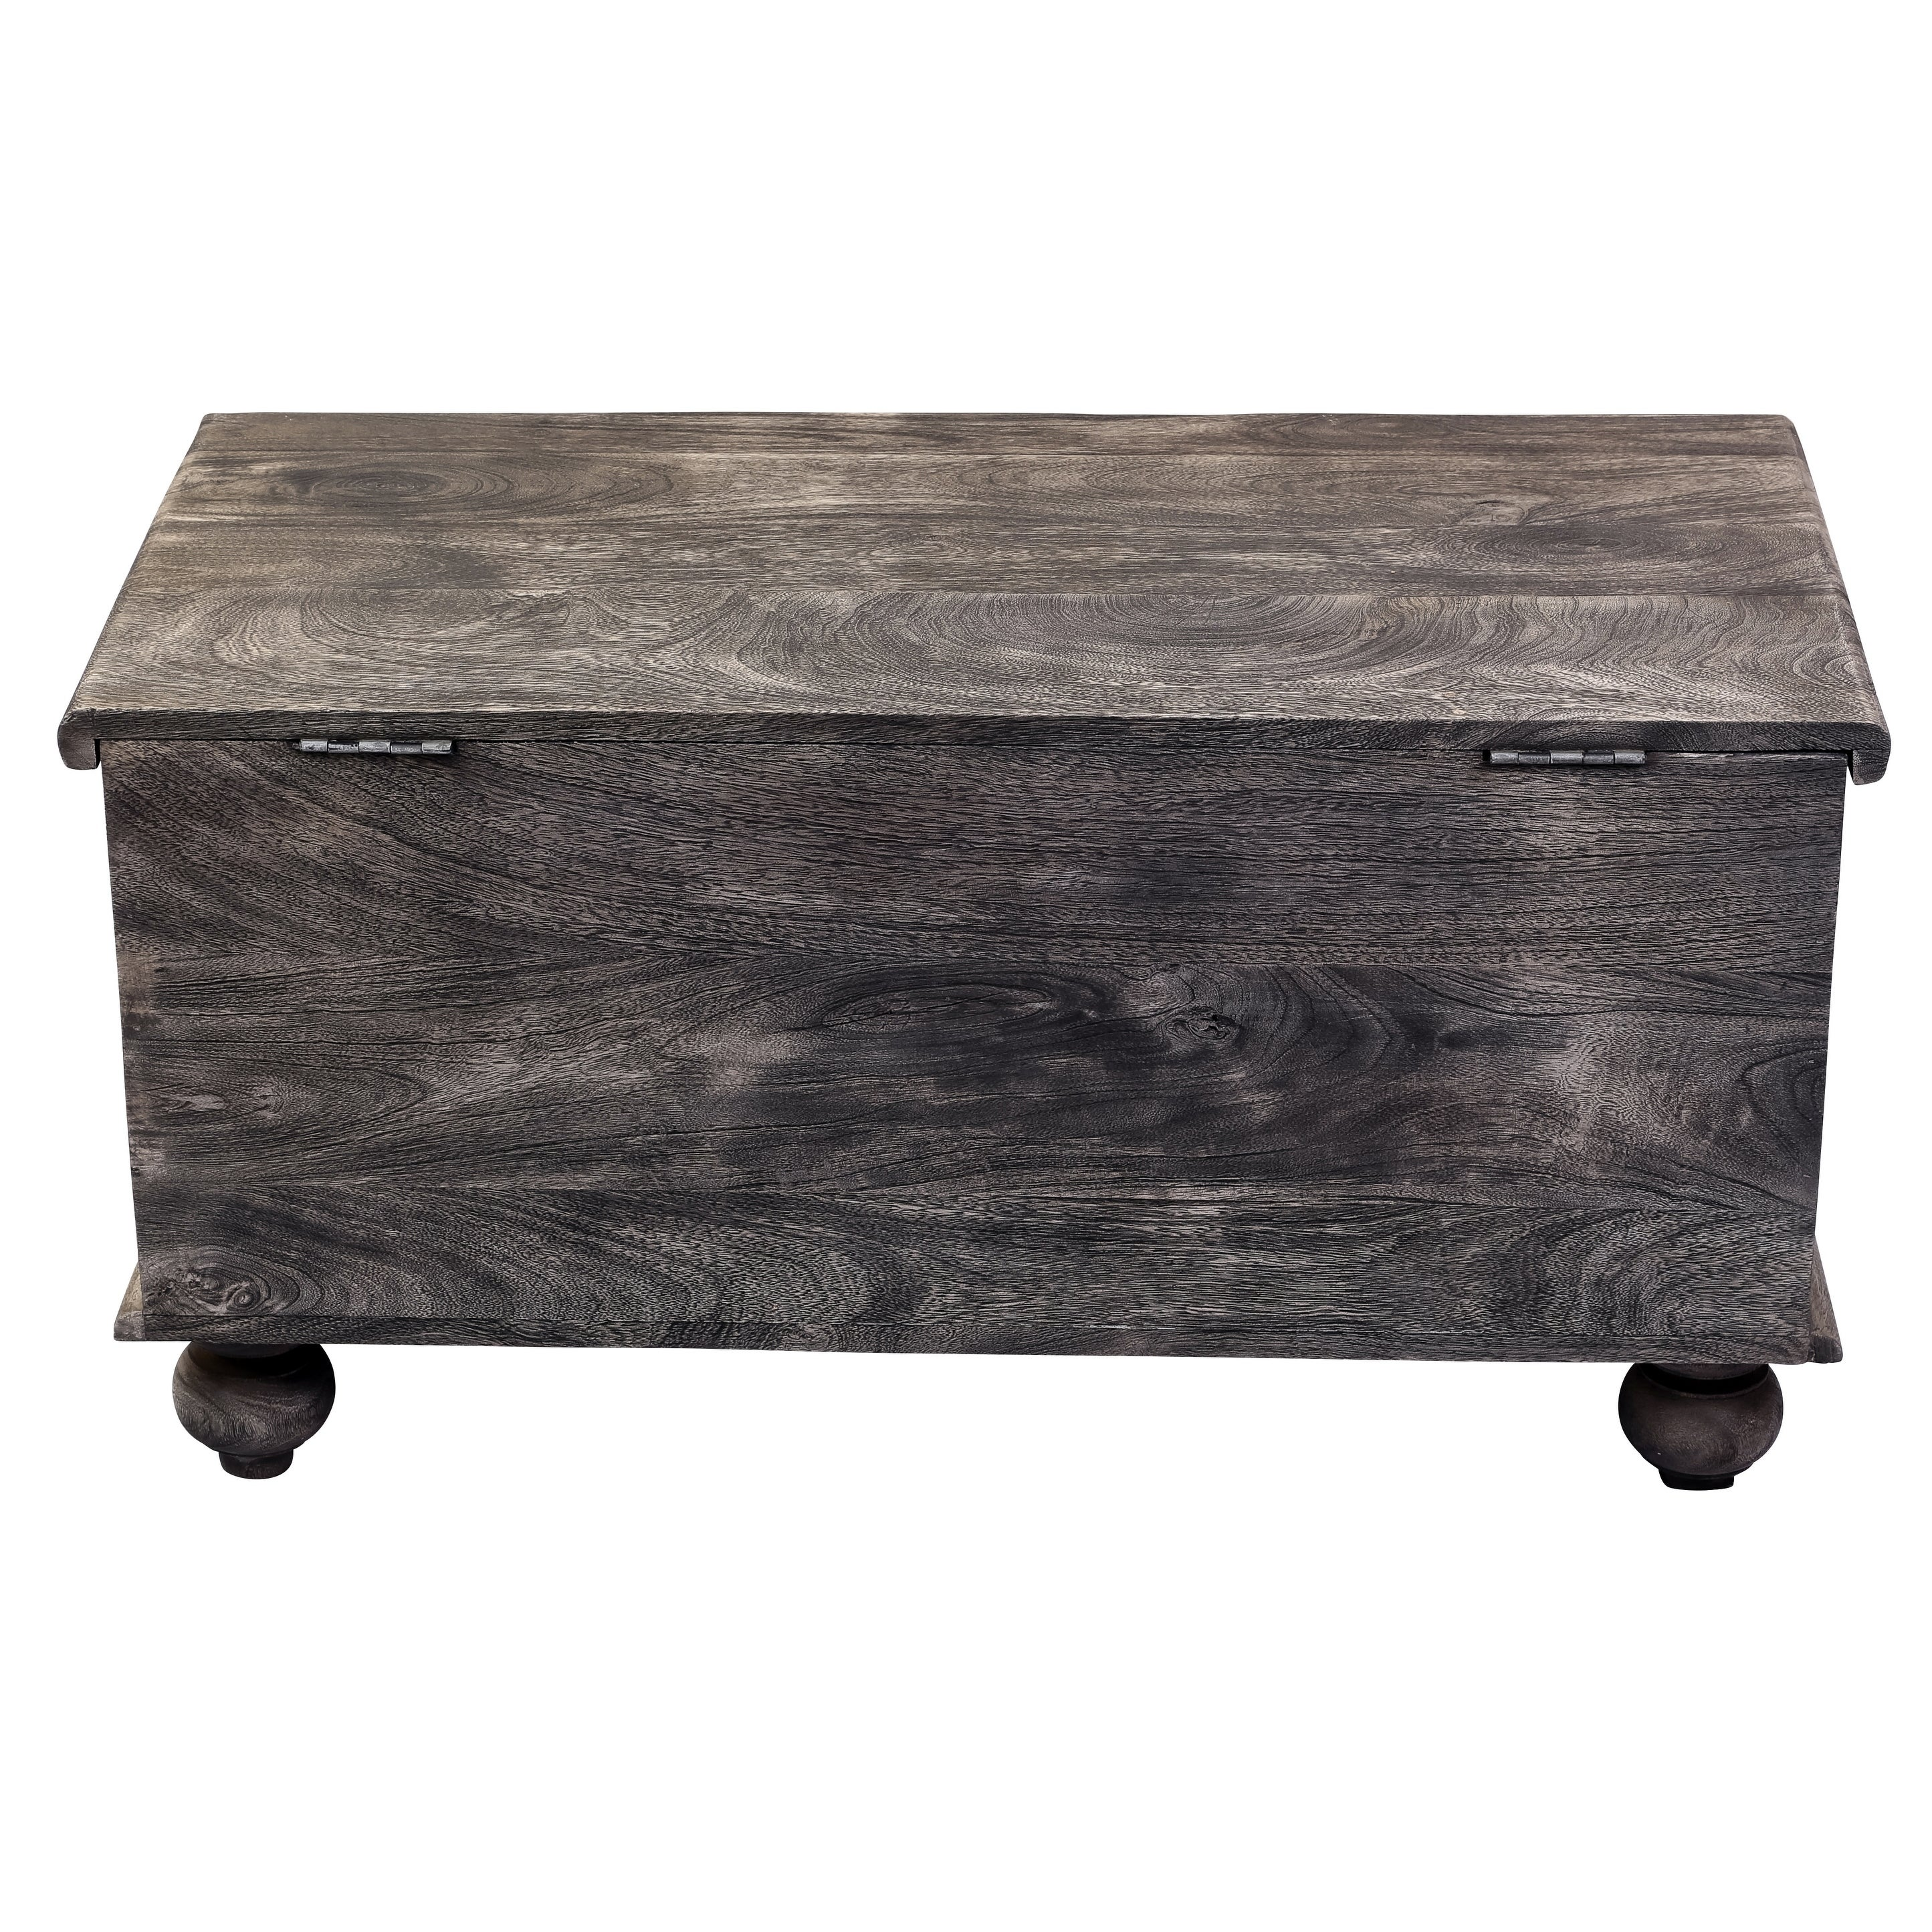 Tremendous Leela Handcarved Medallion Storage Trunk Coffee Table Gray Squirreltailoven Fun Painted Chair Ideas Images Squirreltailovenorg